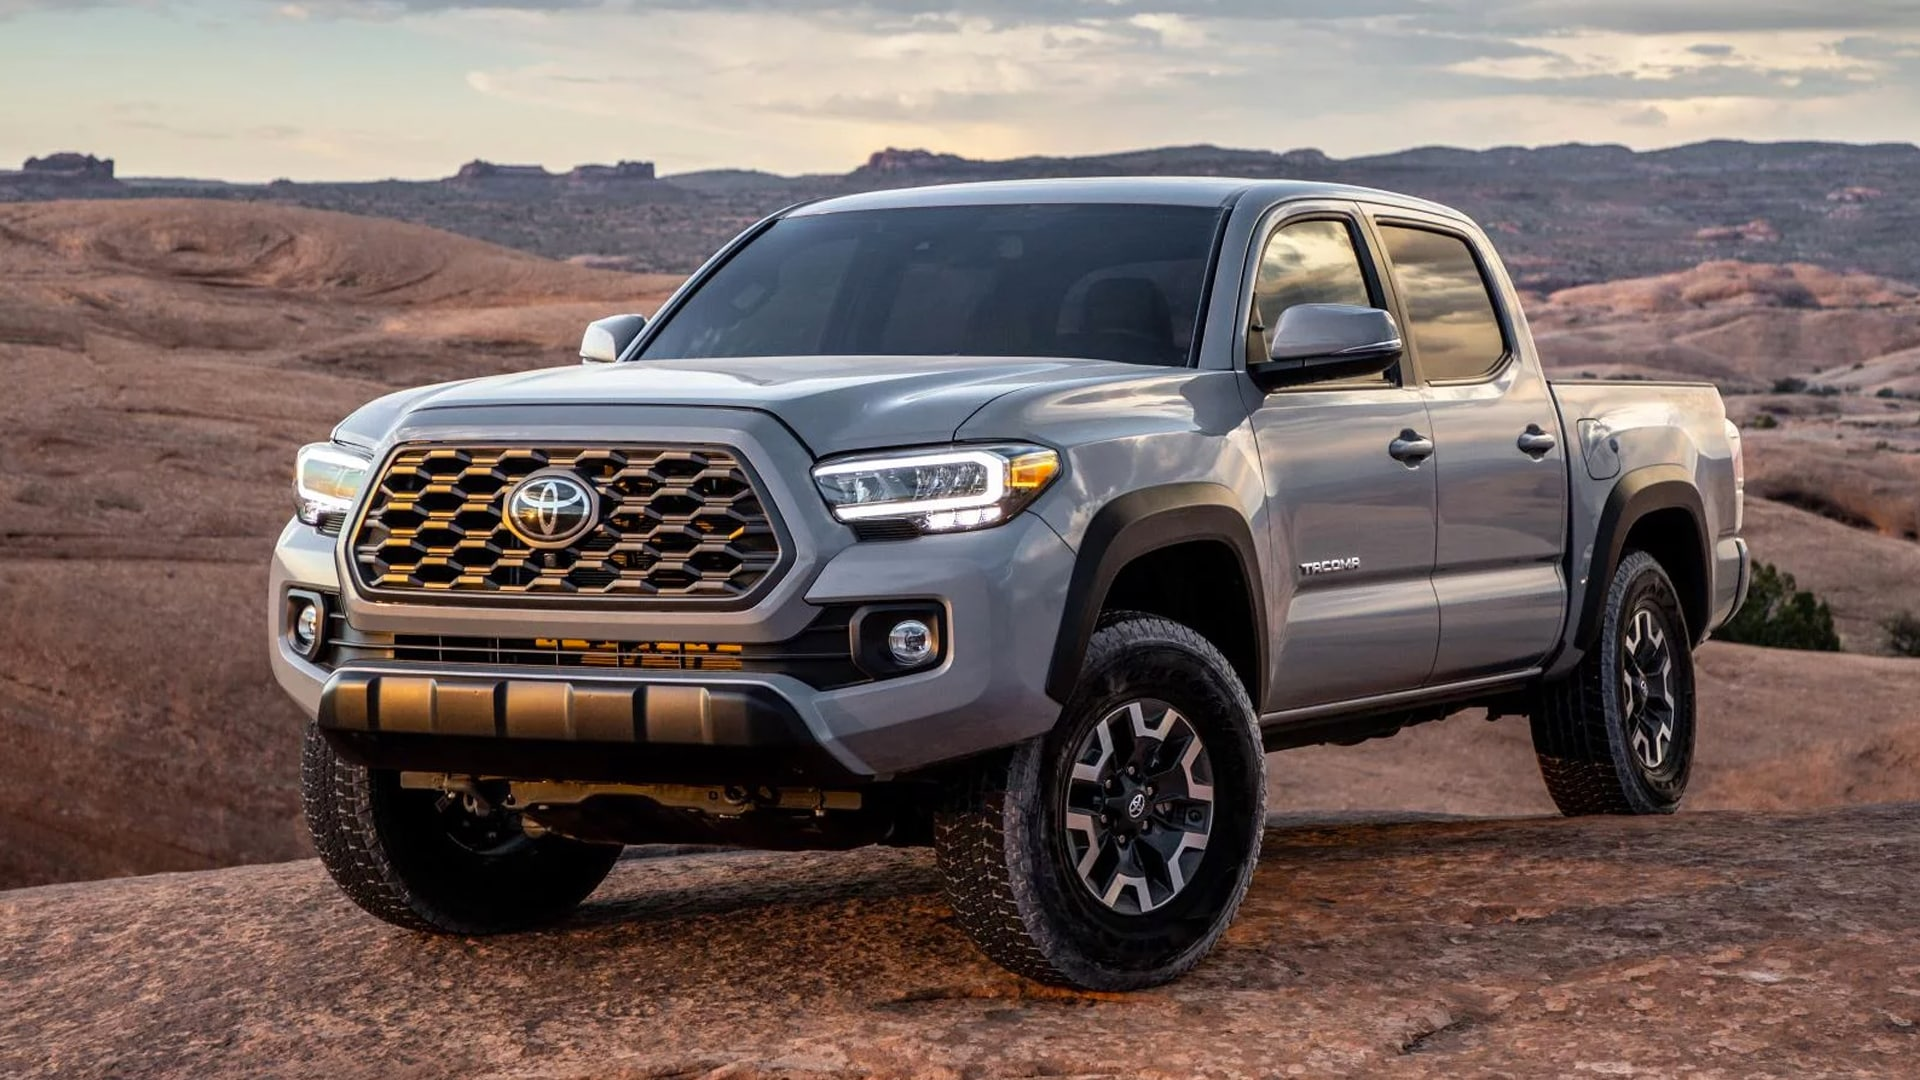 2020 Toyota Tacoma At Toyota of Greenville